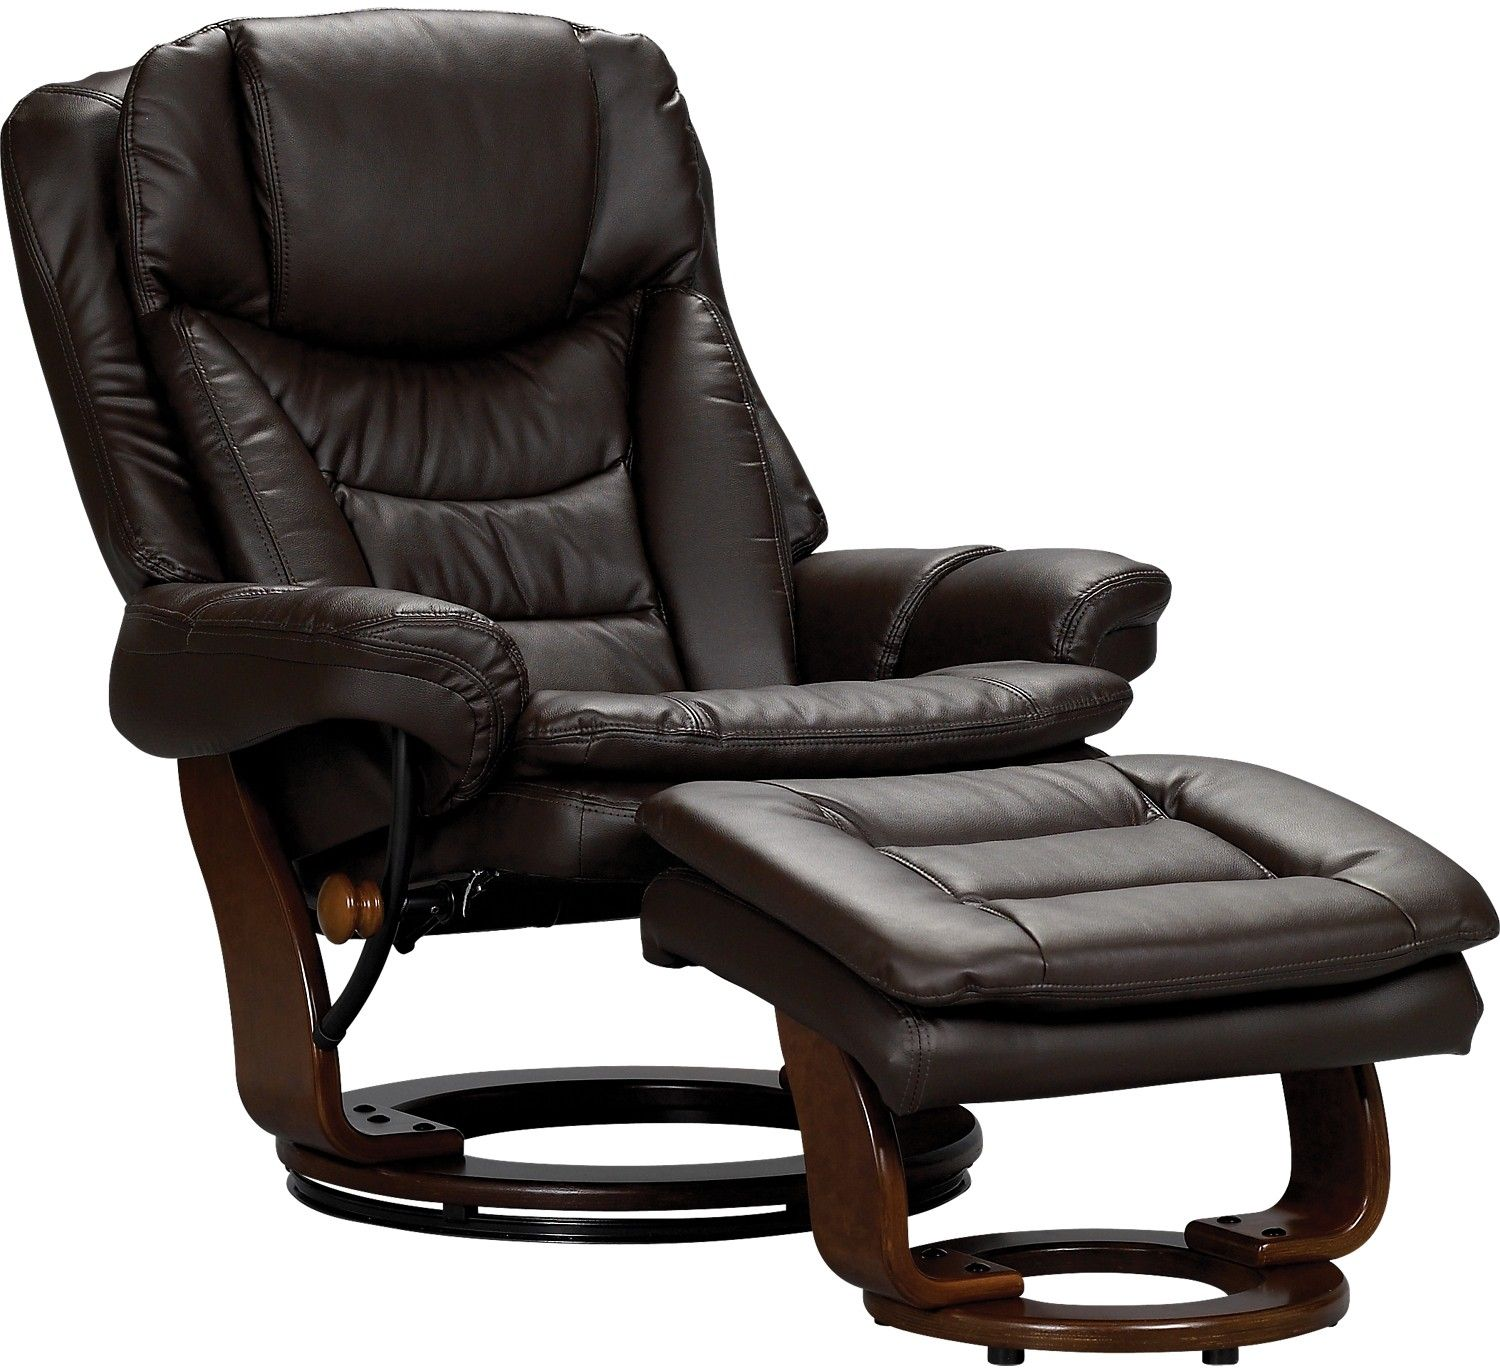 Relaxliegen Leder Leder Relaxsessel Stühle Recliner Leather Recliner Chair Und